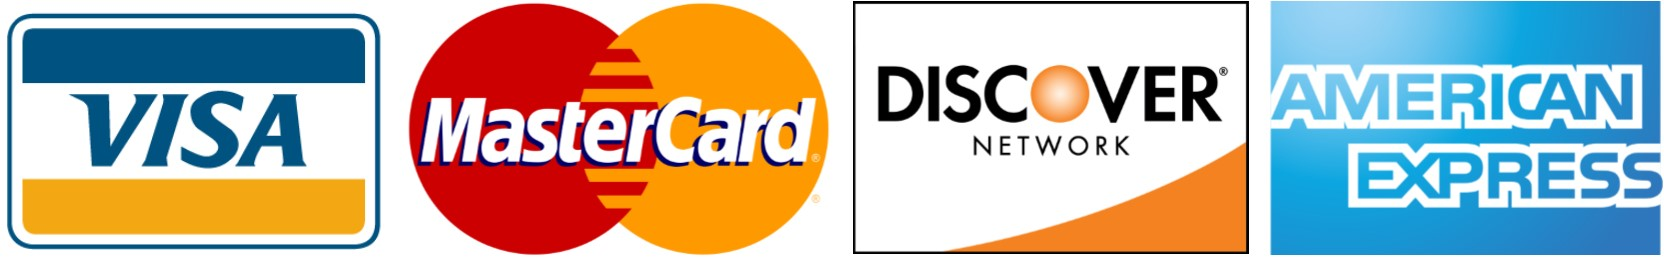 Pay with VISA, MasterCard, American Express and Discover